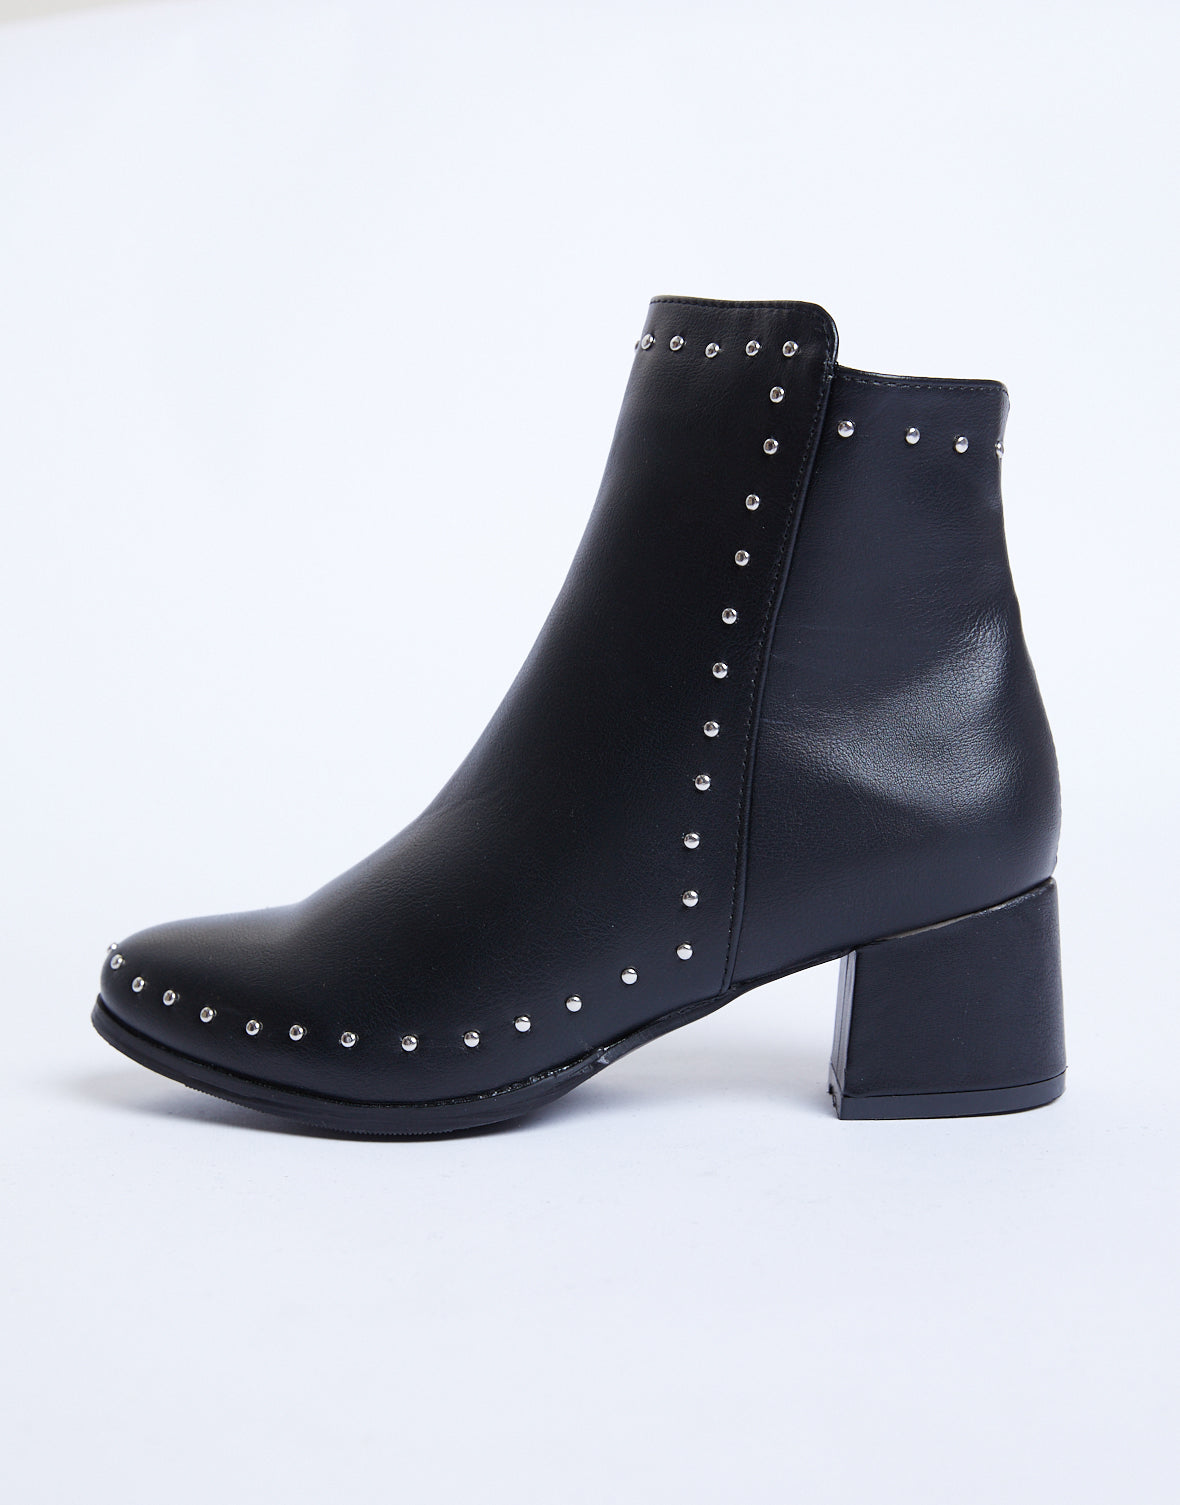 Emerson Studded Booties - Black Ankle